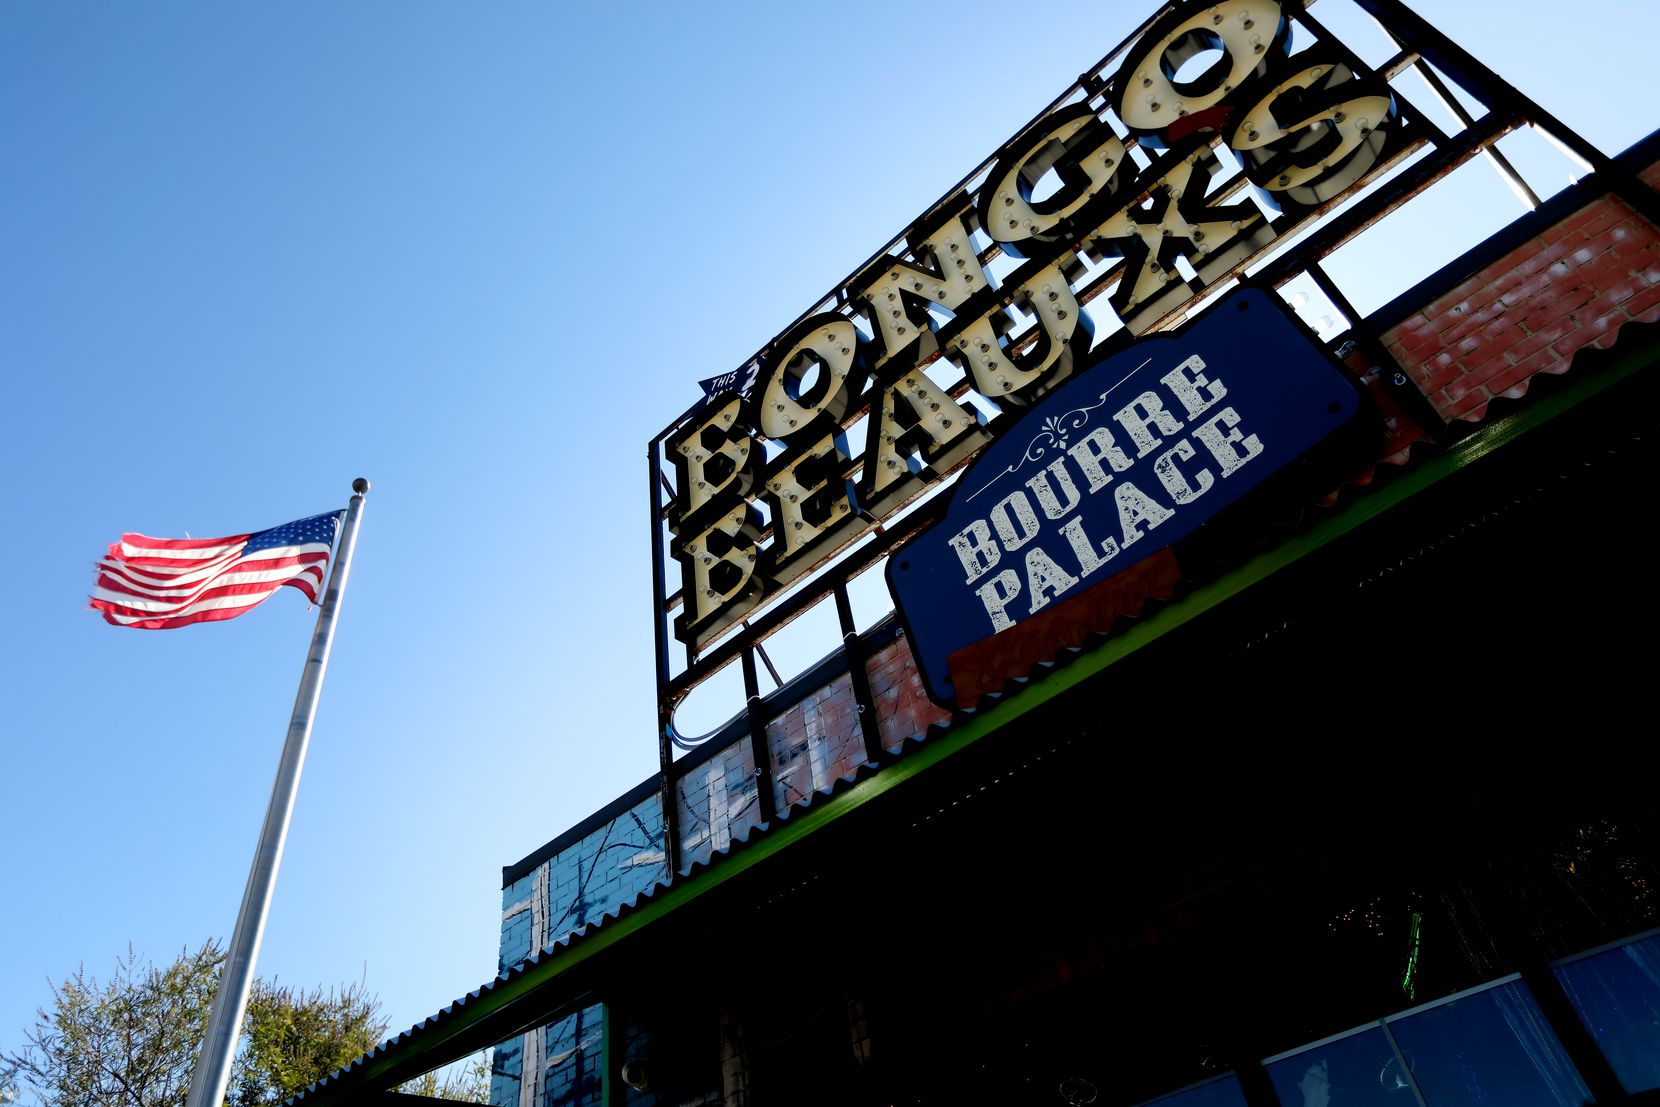 Bongo Beaux's Bourre Palace & Cajun Kitchen is located on the Celina square. It's a quaint downtown that's about to get a kick of energy by this new restaurant.